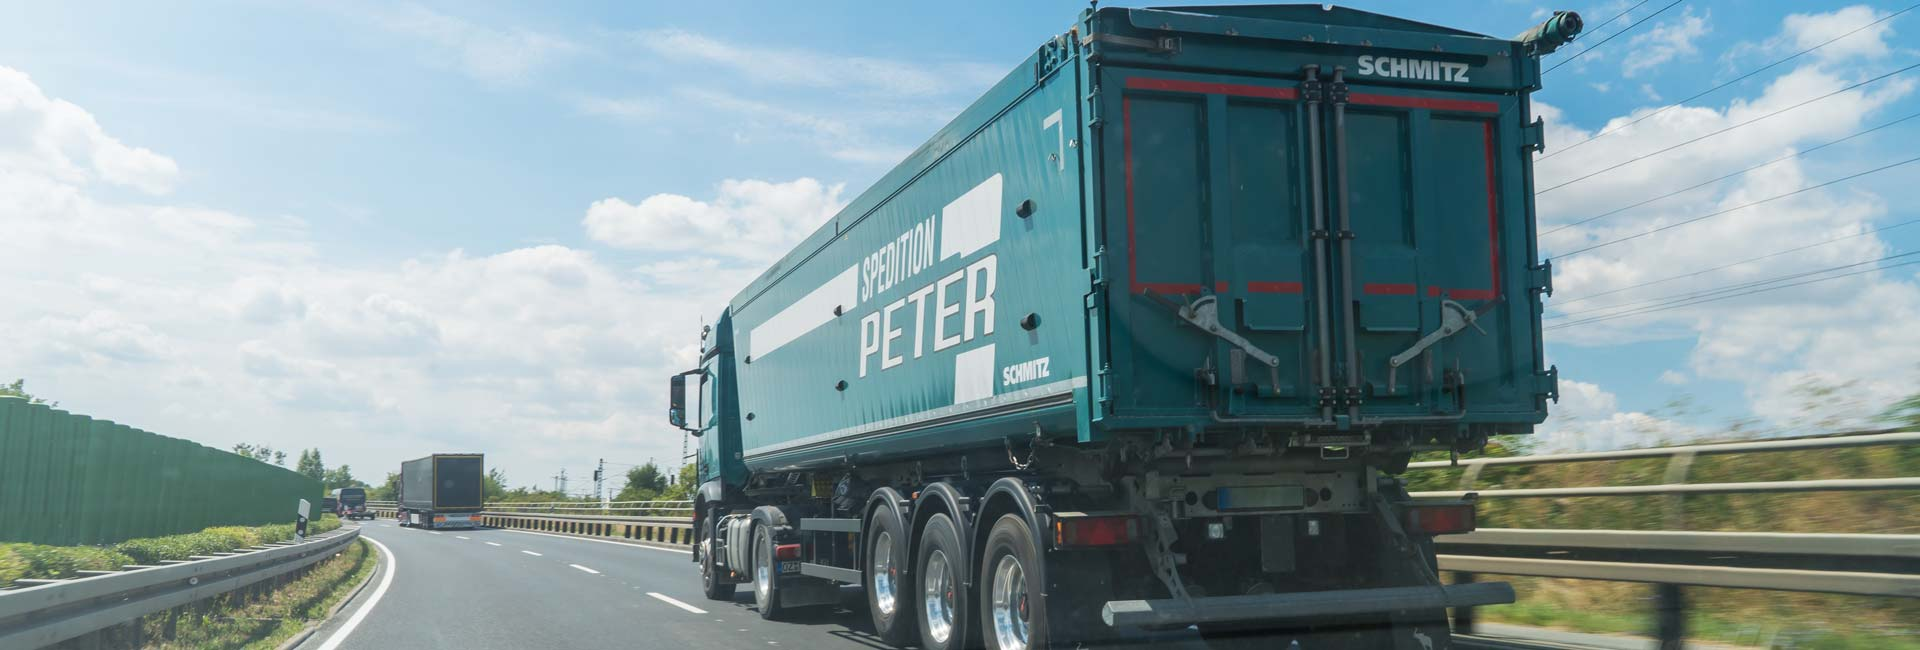 Transporte | Spedition Peter